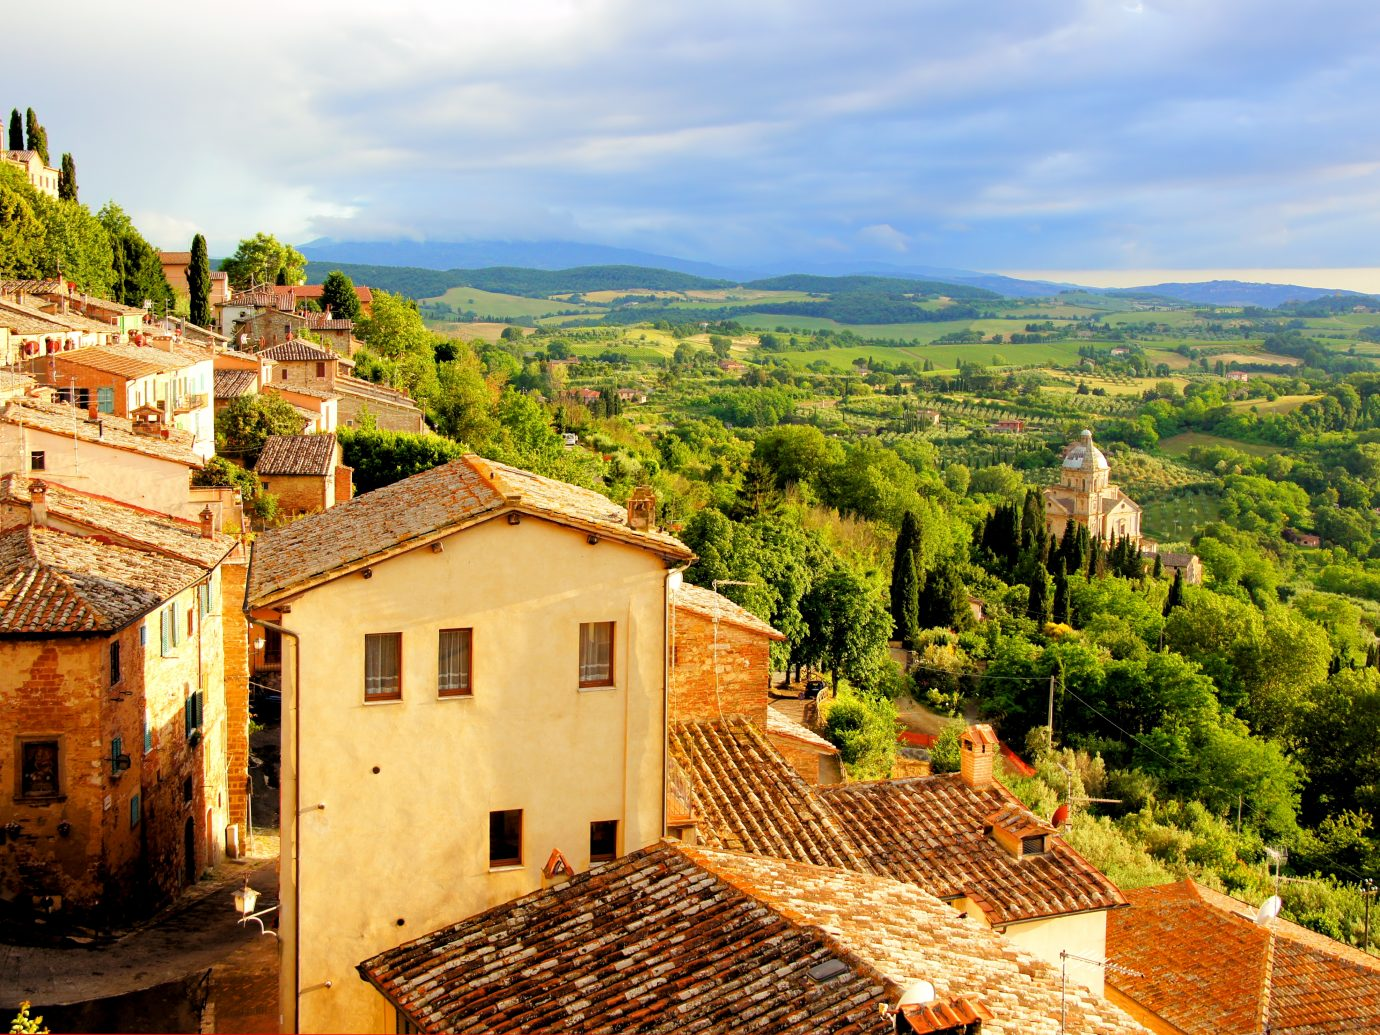 View over the Tuscan countryside and the town of Montepulciano at sunset, Italy